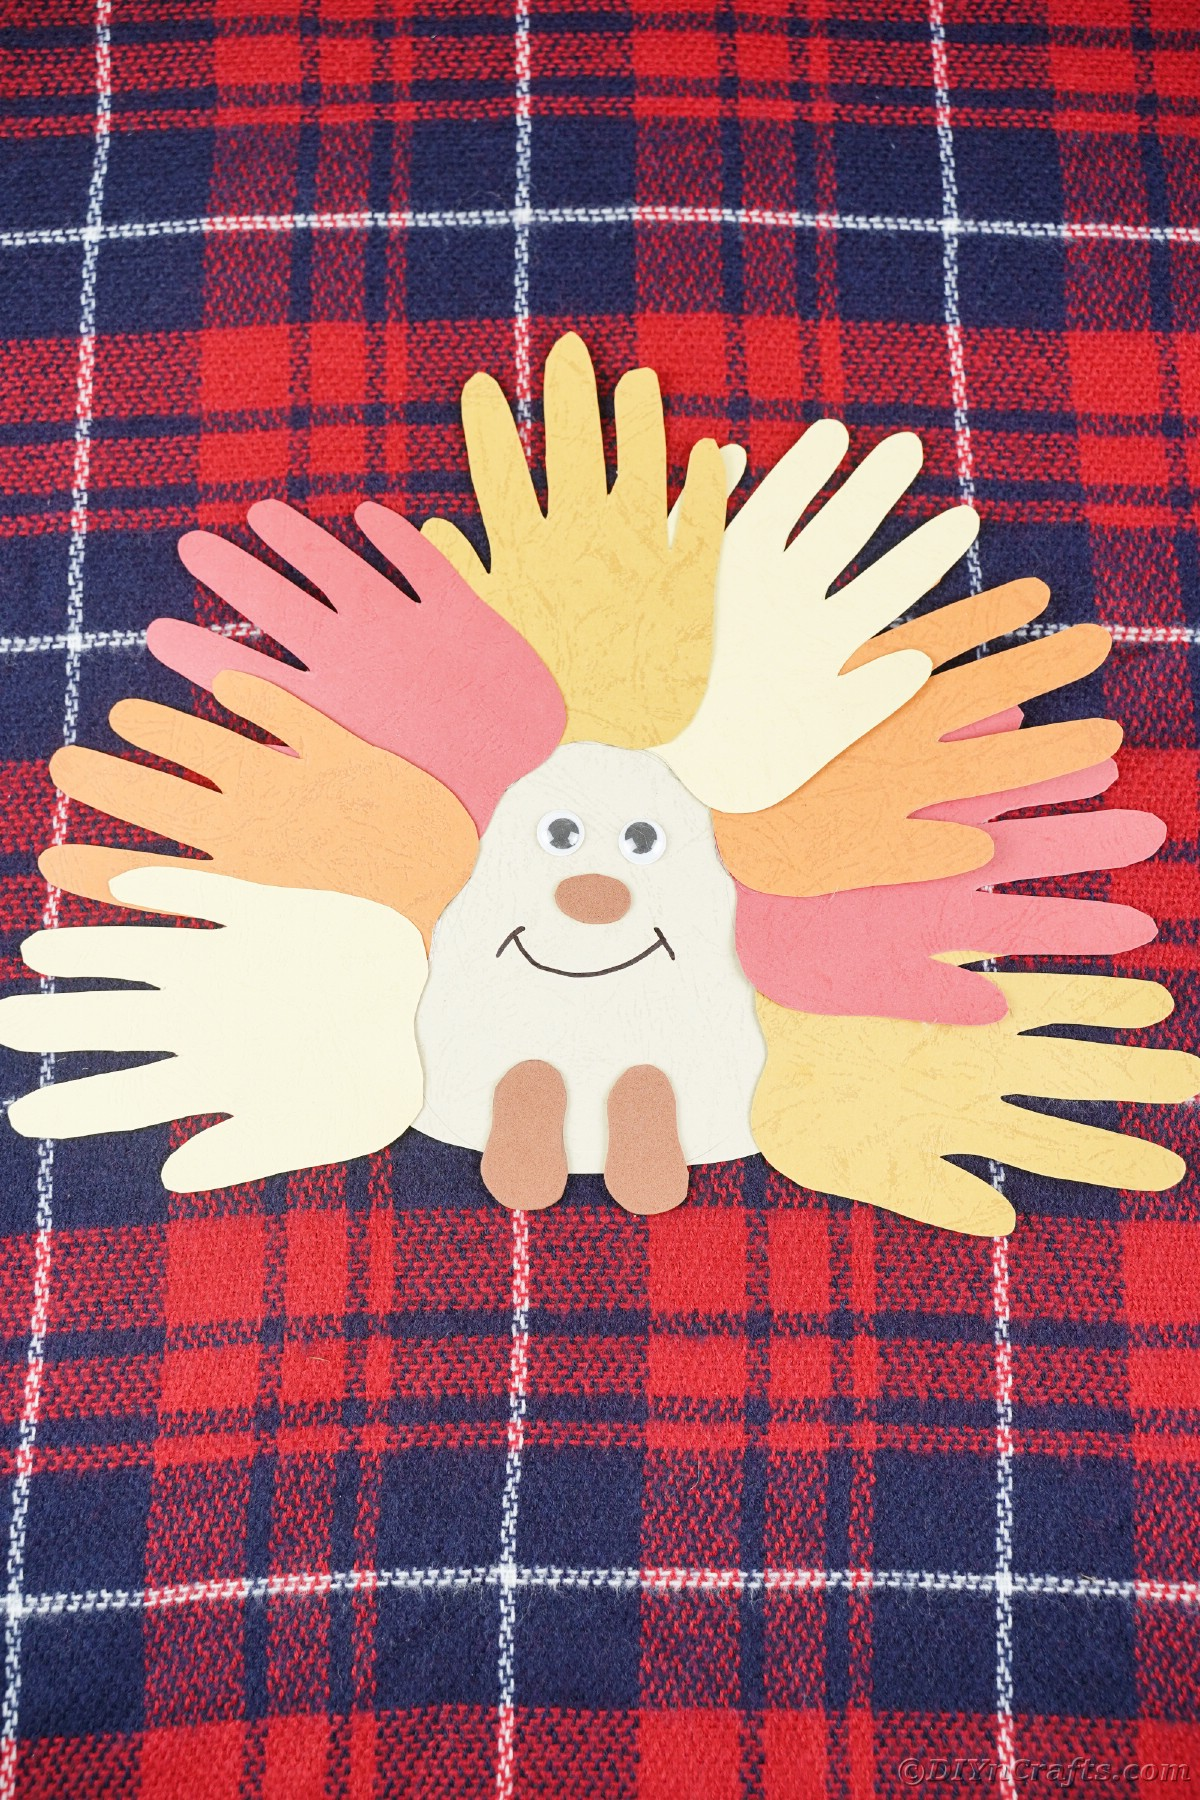 Blue and red plaid fabric on surface with paper hedgehog on top